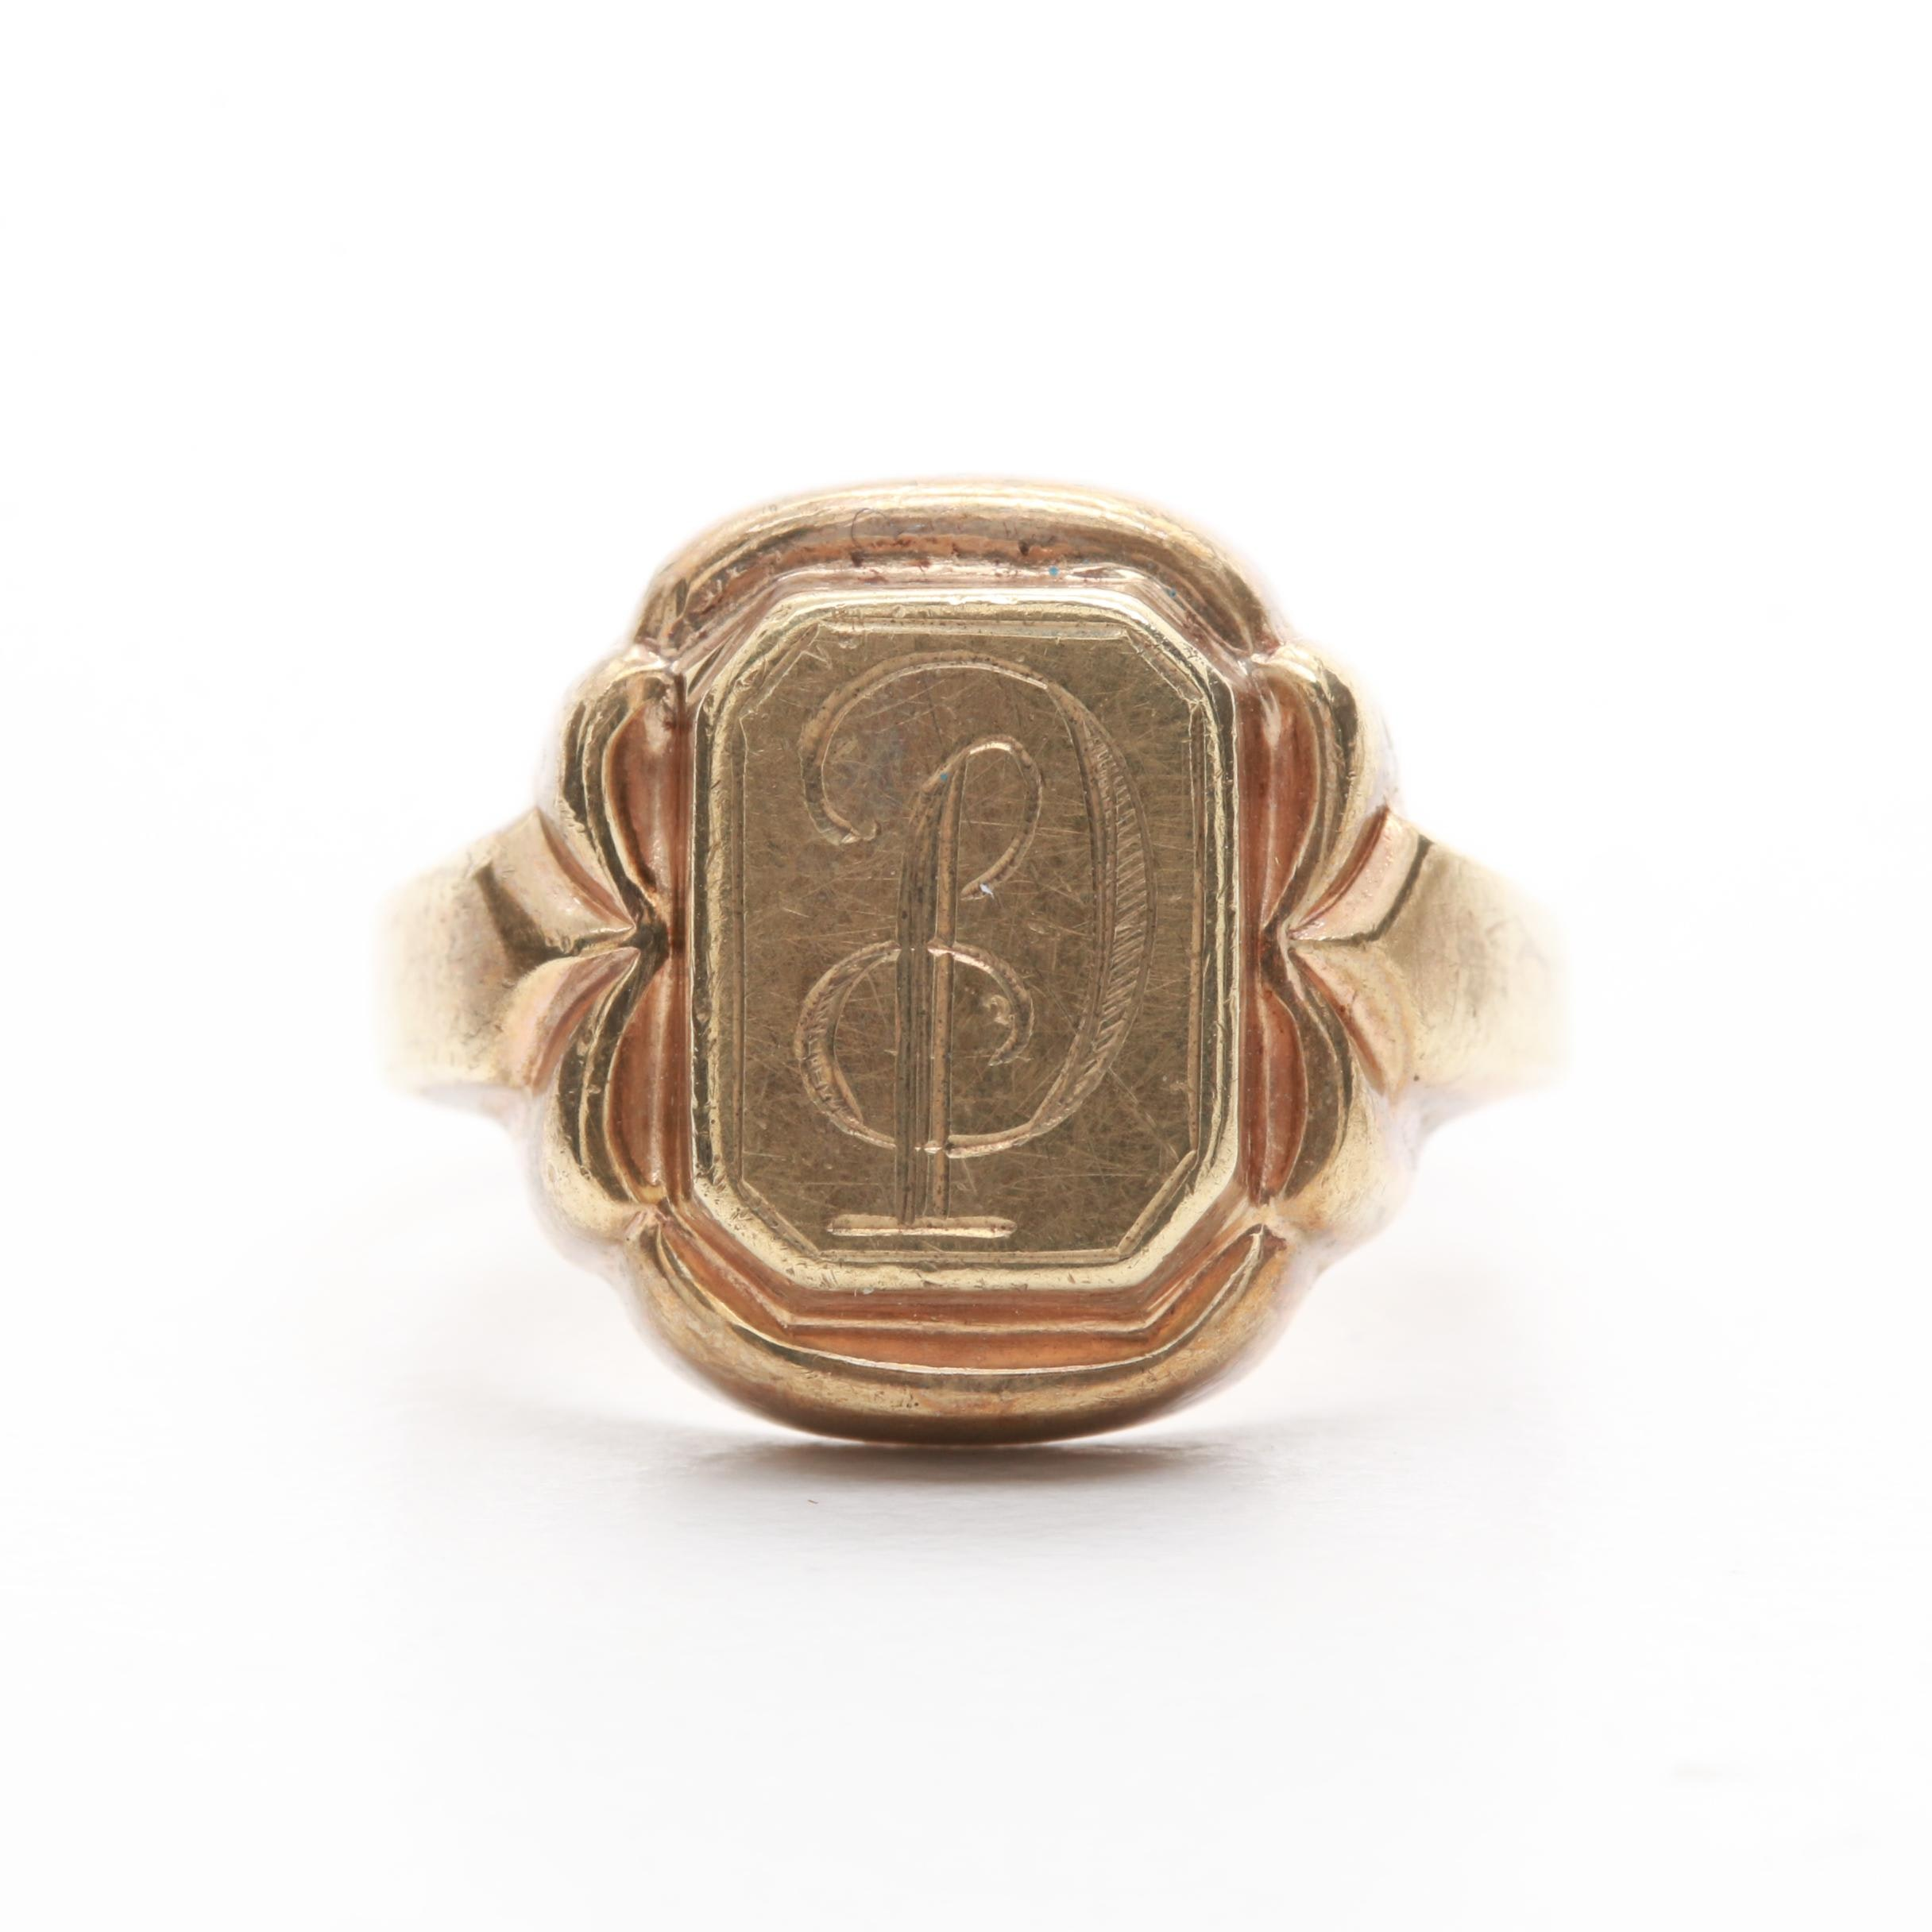 Vintage 8K Yellow Gold Signet Ring with Personalized Monogram